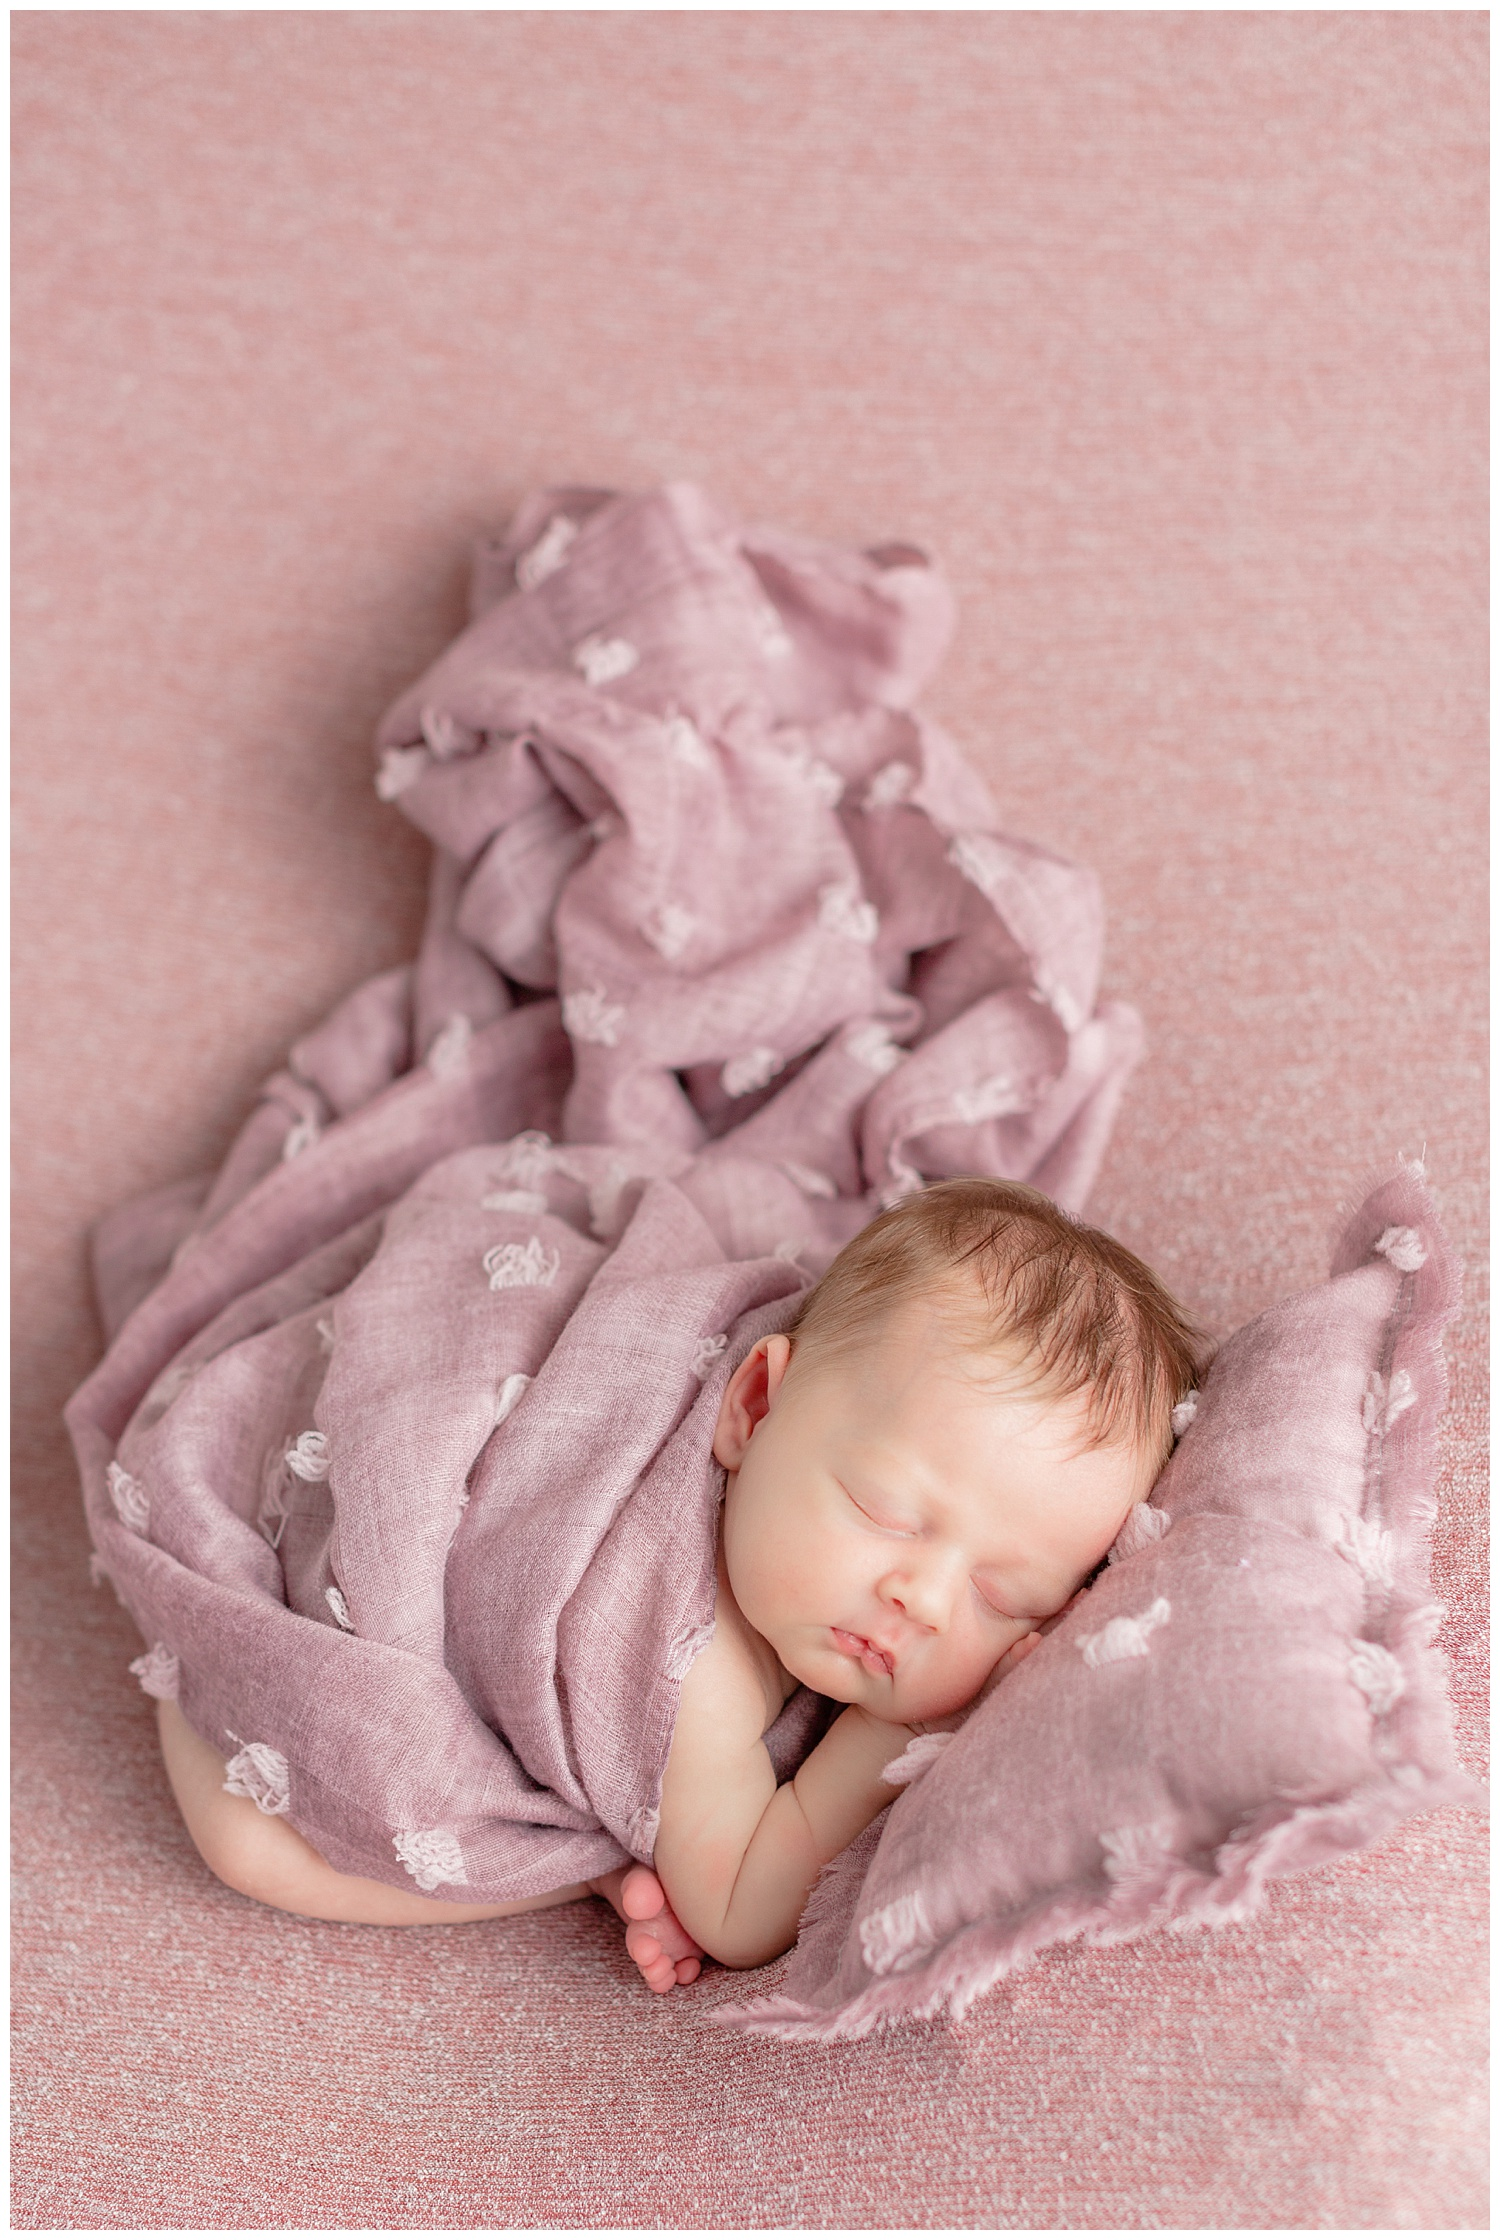 Newborn baby girl posed on mauve colored stretch fabric snuggled in a taco pose with a textured pillow and wrap.   CB Studio